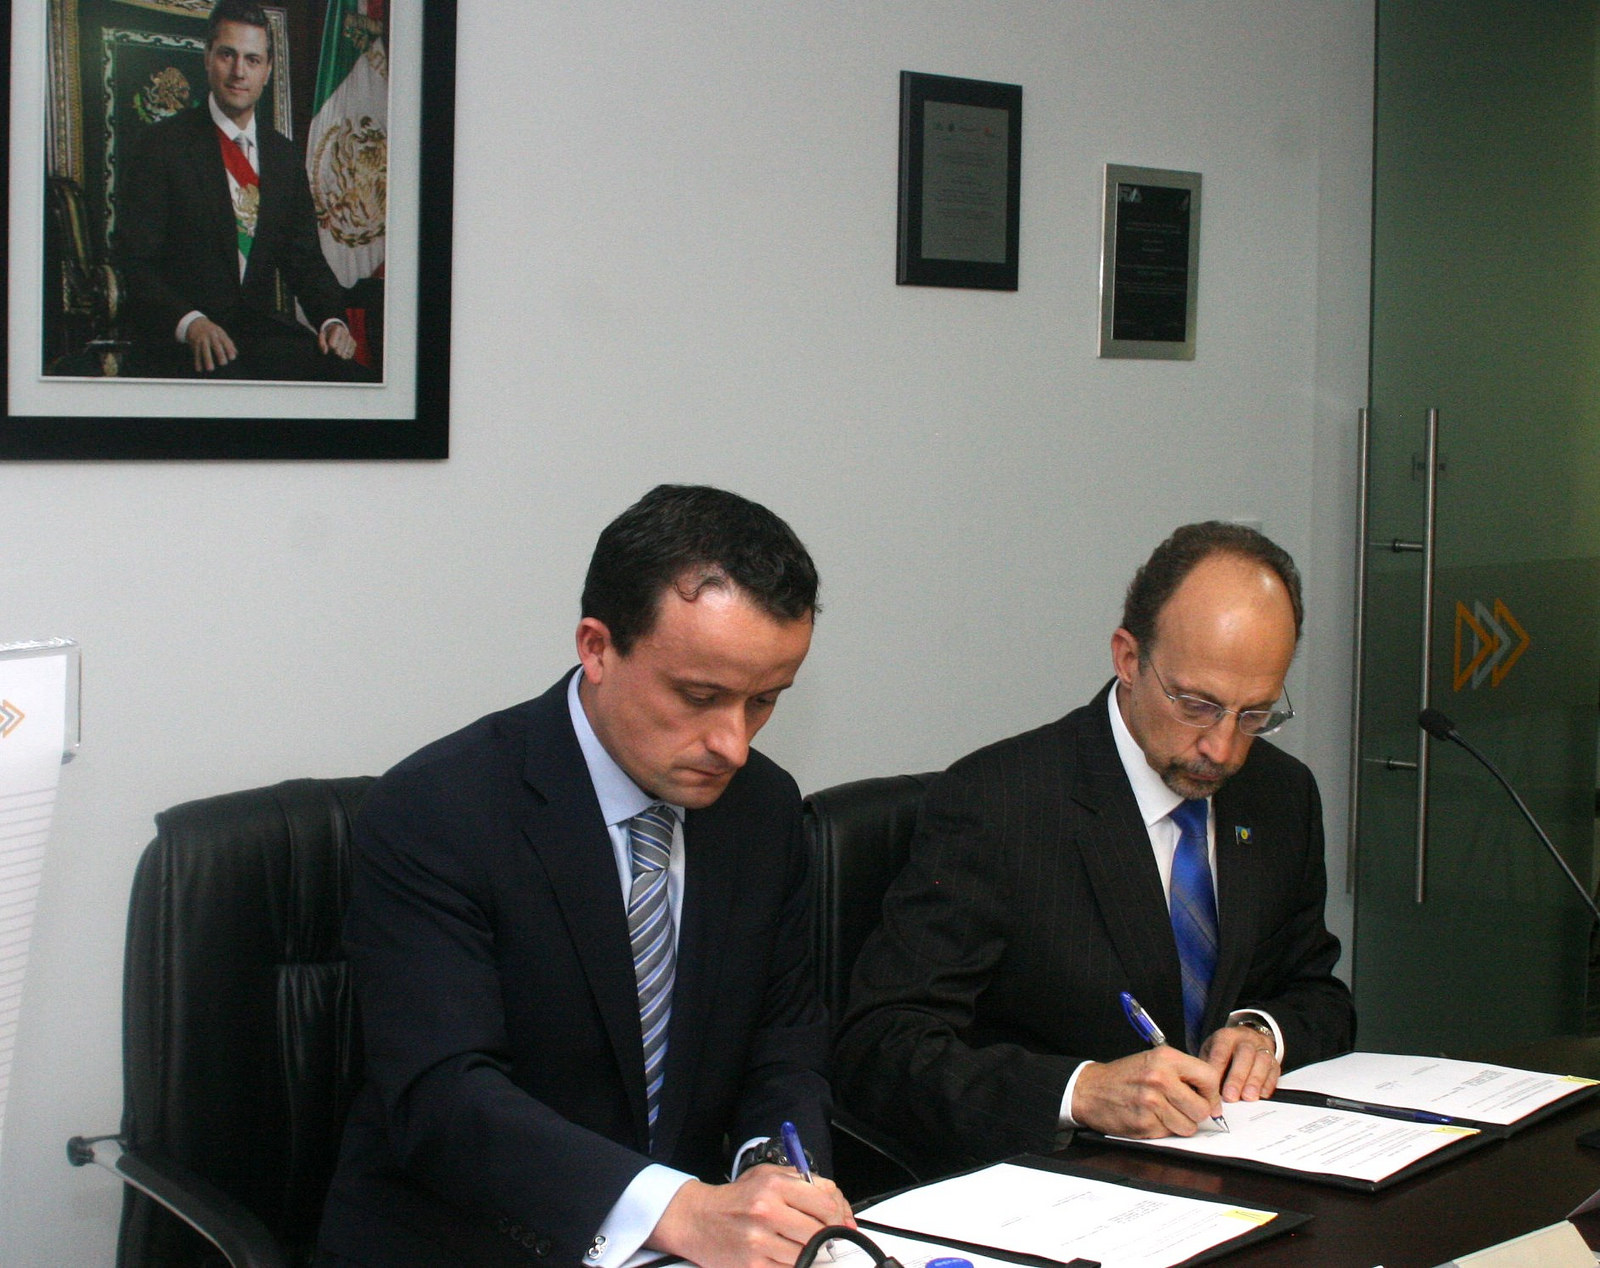 Dr. C James Hospedales, Executive Director of the Caribbean Public Health Agency (CARPHA) (right) and Mikel Arriola, Head of Federal Commission for the Protection against Sanitary Risk (COFEPRIS) sign the MOU, on Thursday April 23 2015.